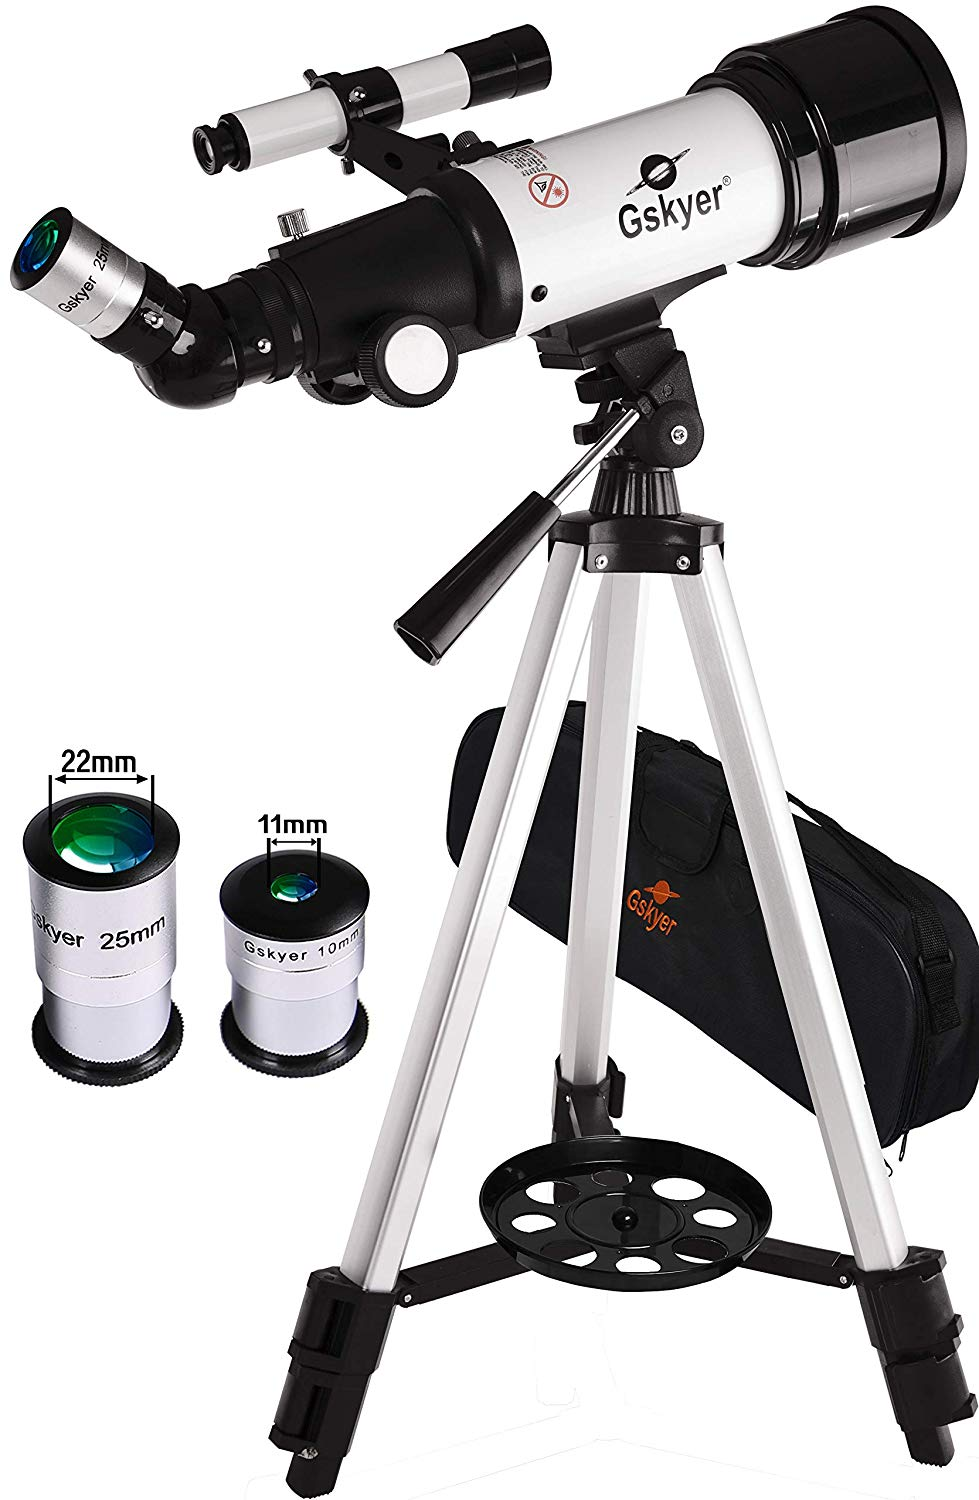 Gskyer AZ70400 German Technology Astronomy Telescope